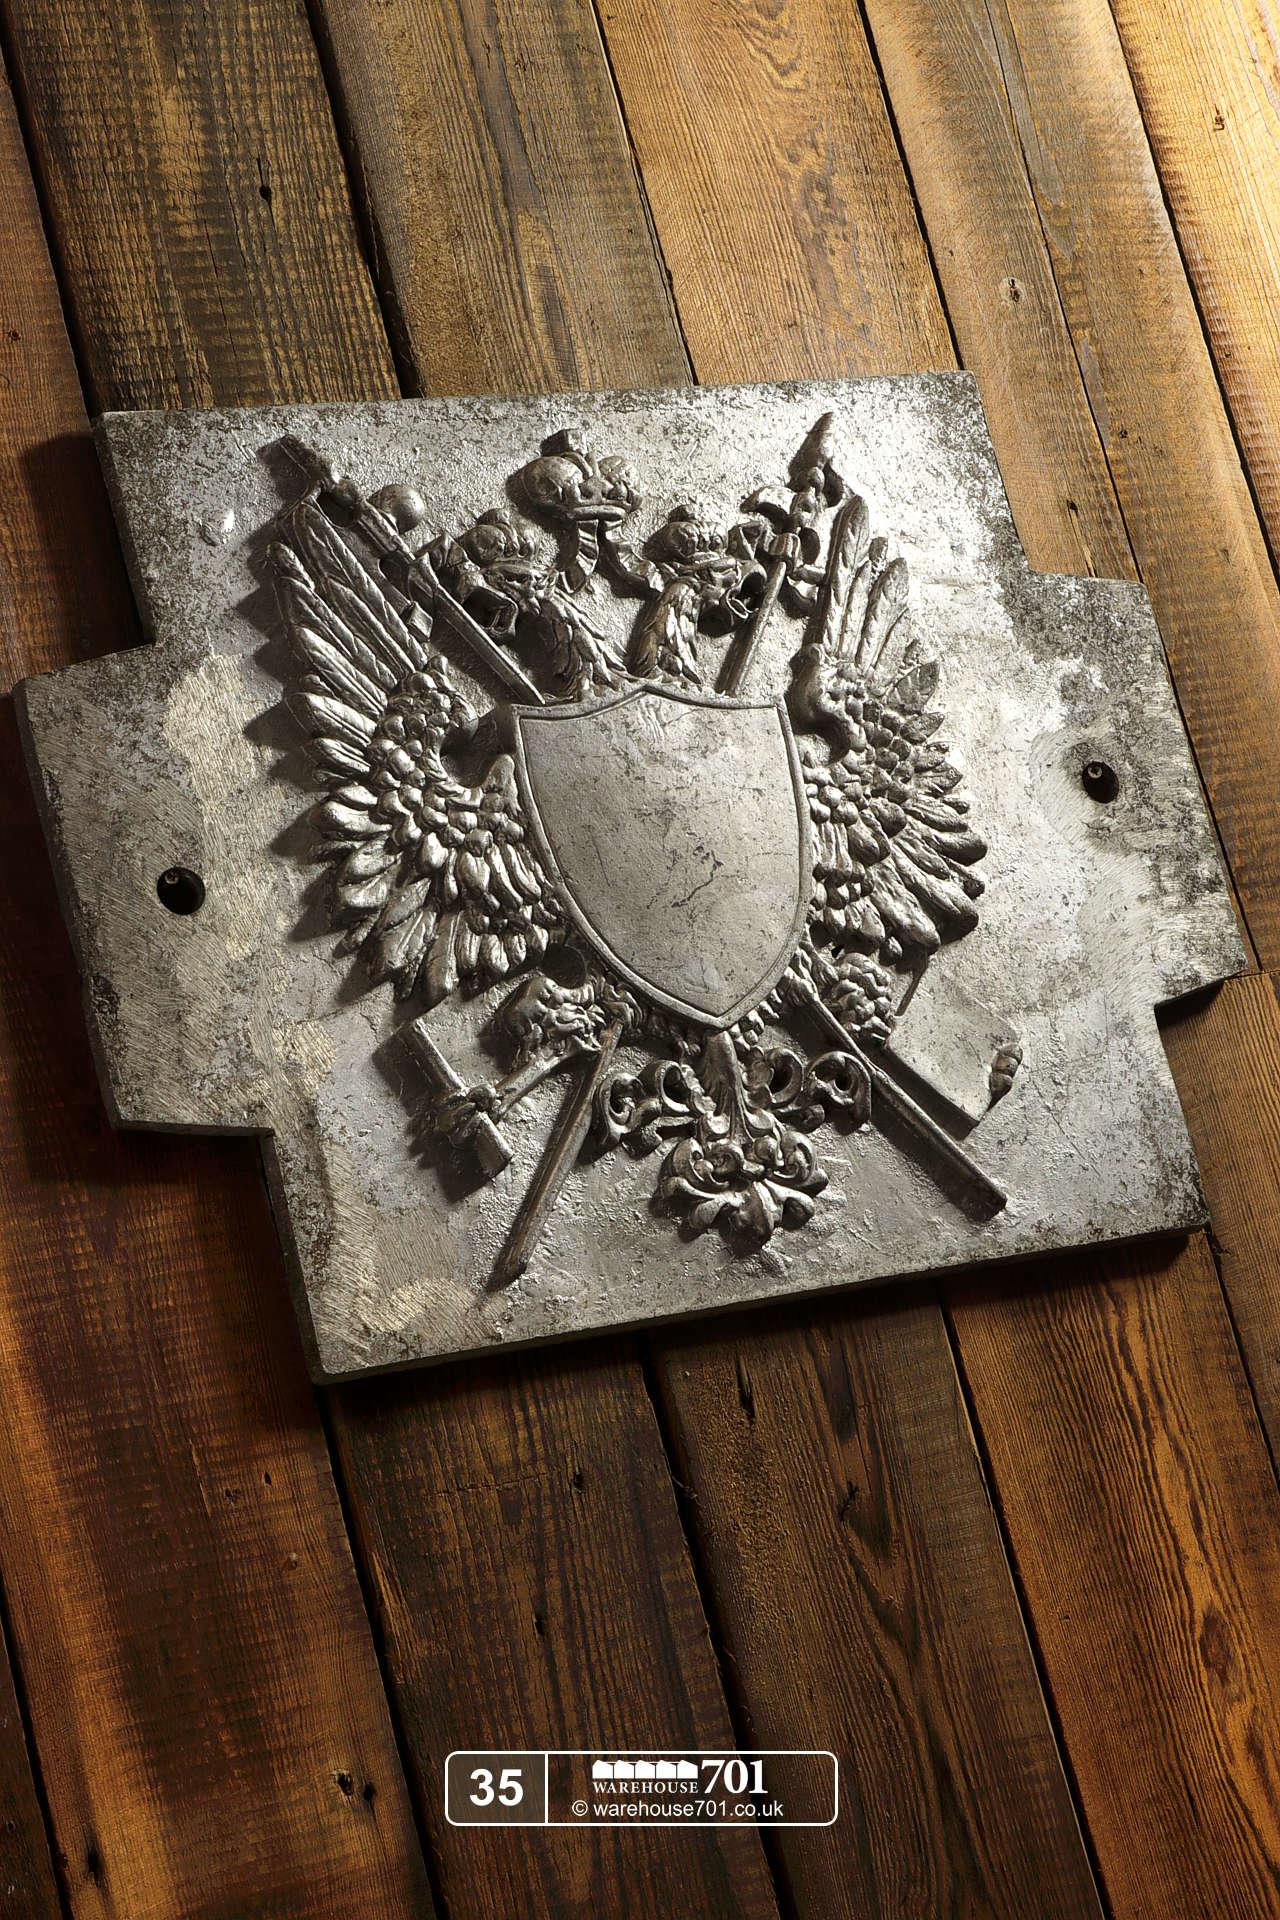 Aluminium Foundry Castings of Heraldic Crests (No's 35, 36, 37) for Shop, Retail and Home Display